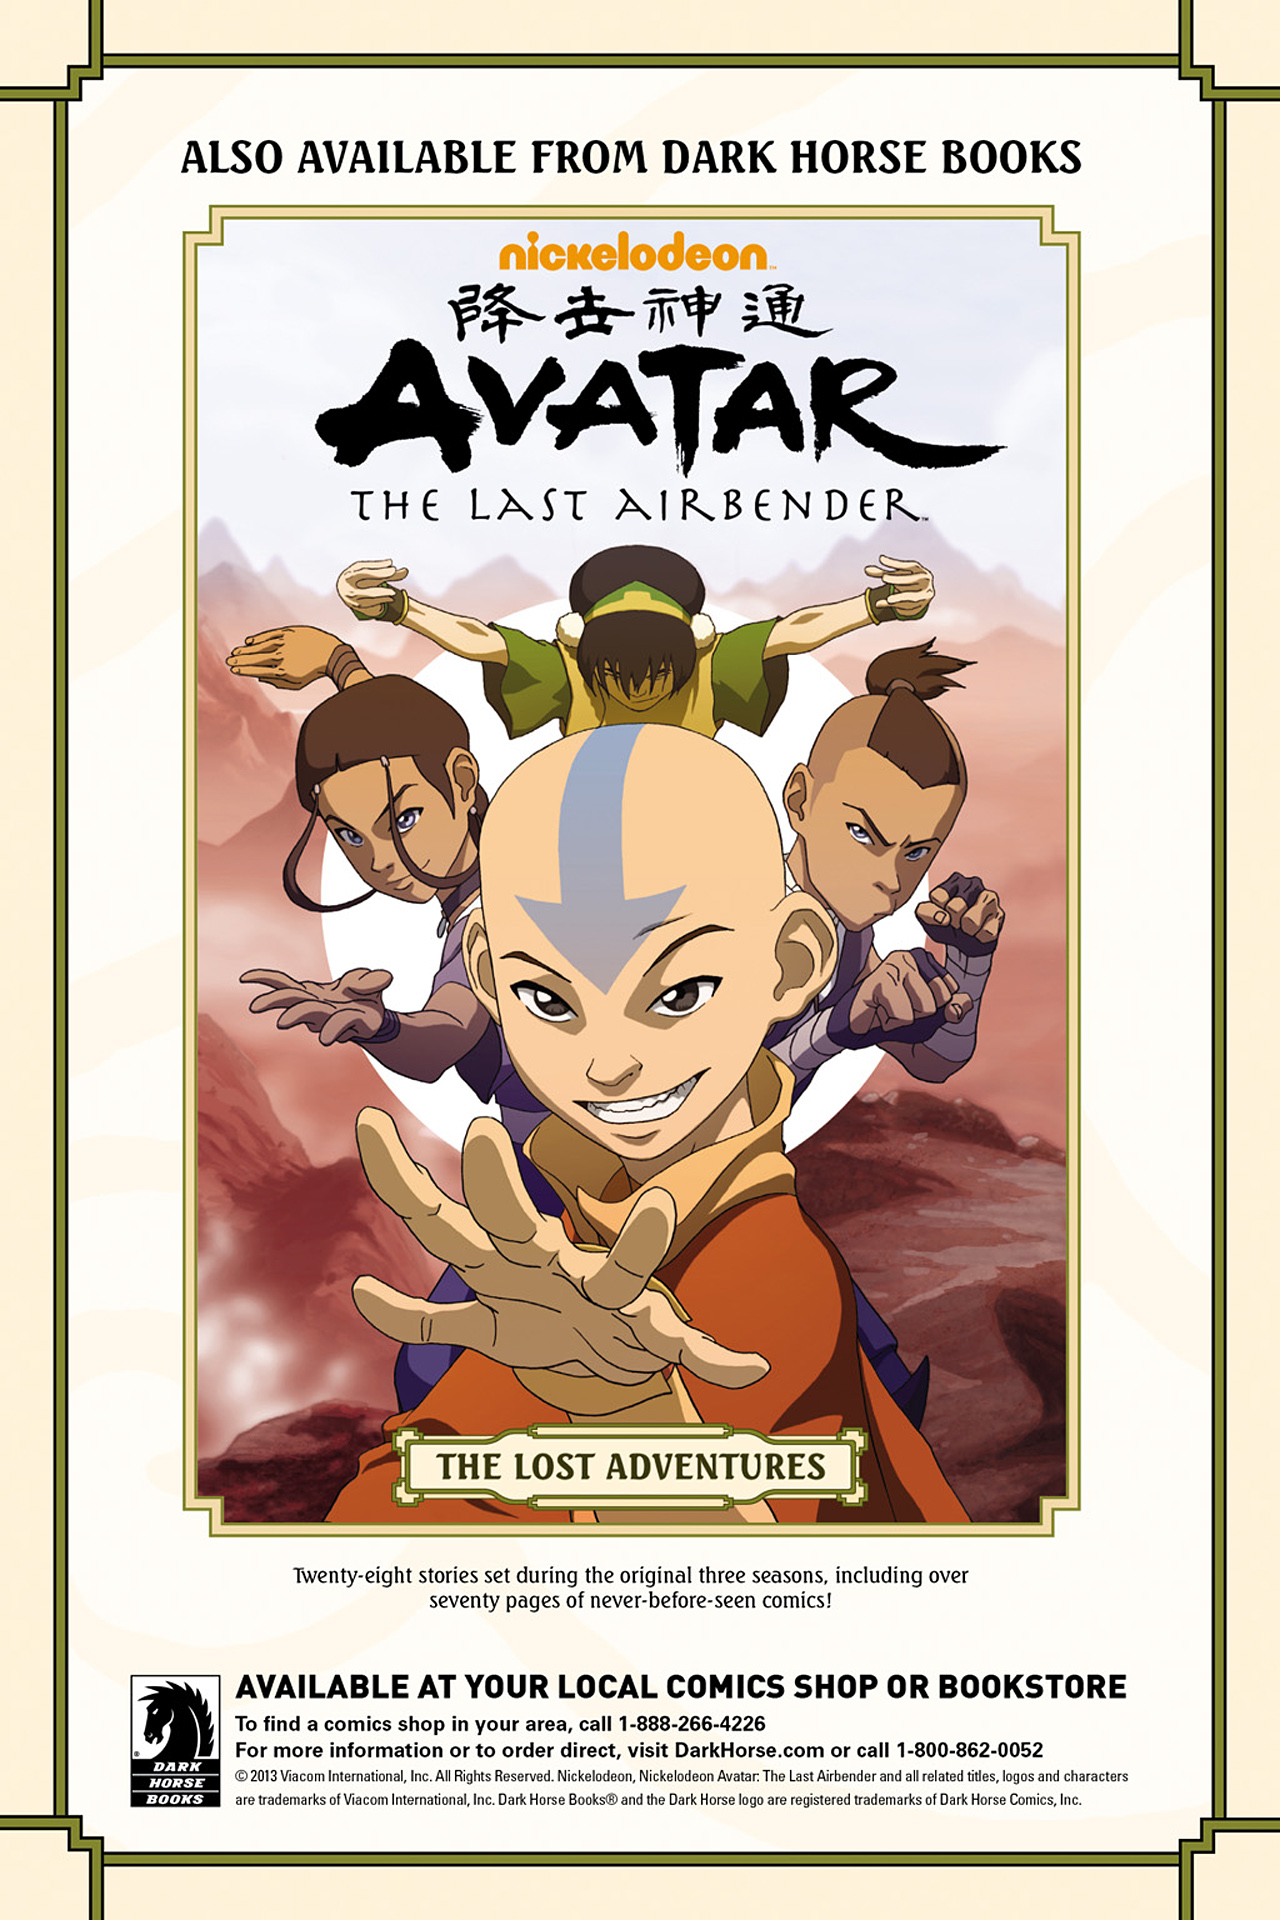 Read online Nickelodeon Avatar: The Last Airbender - The Search comic -  Issue # Part 1 - 79